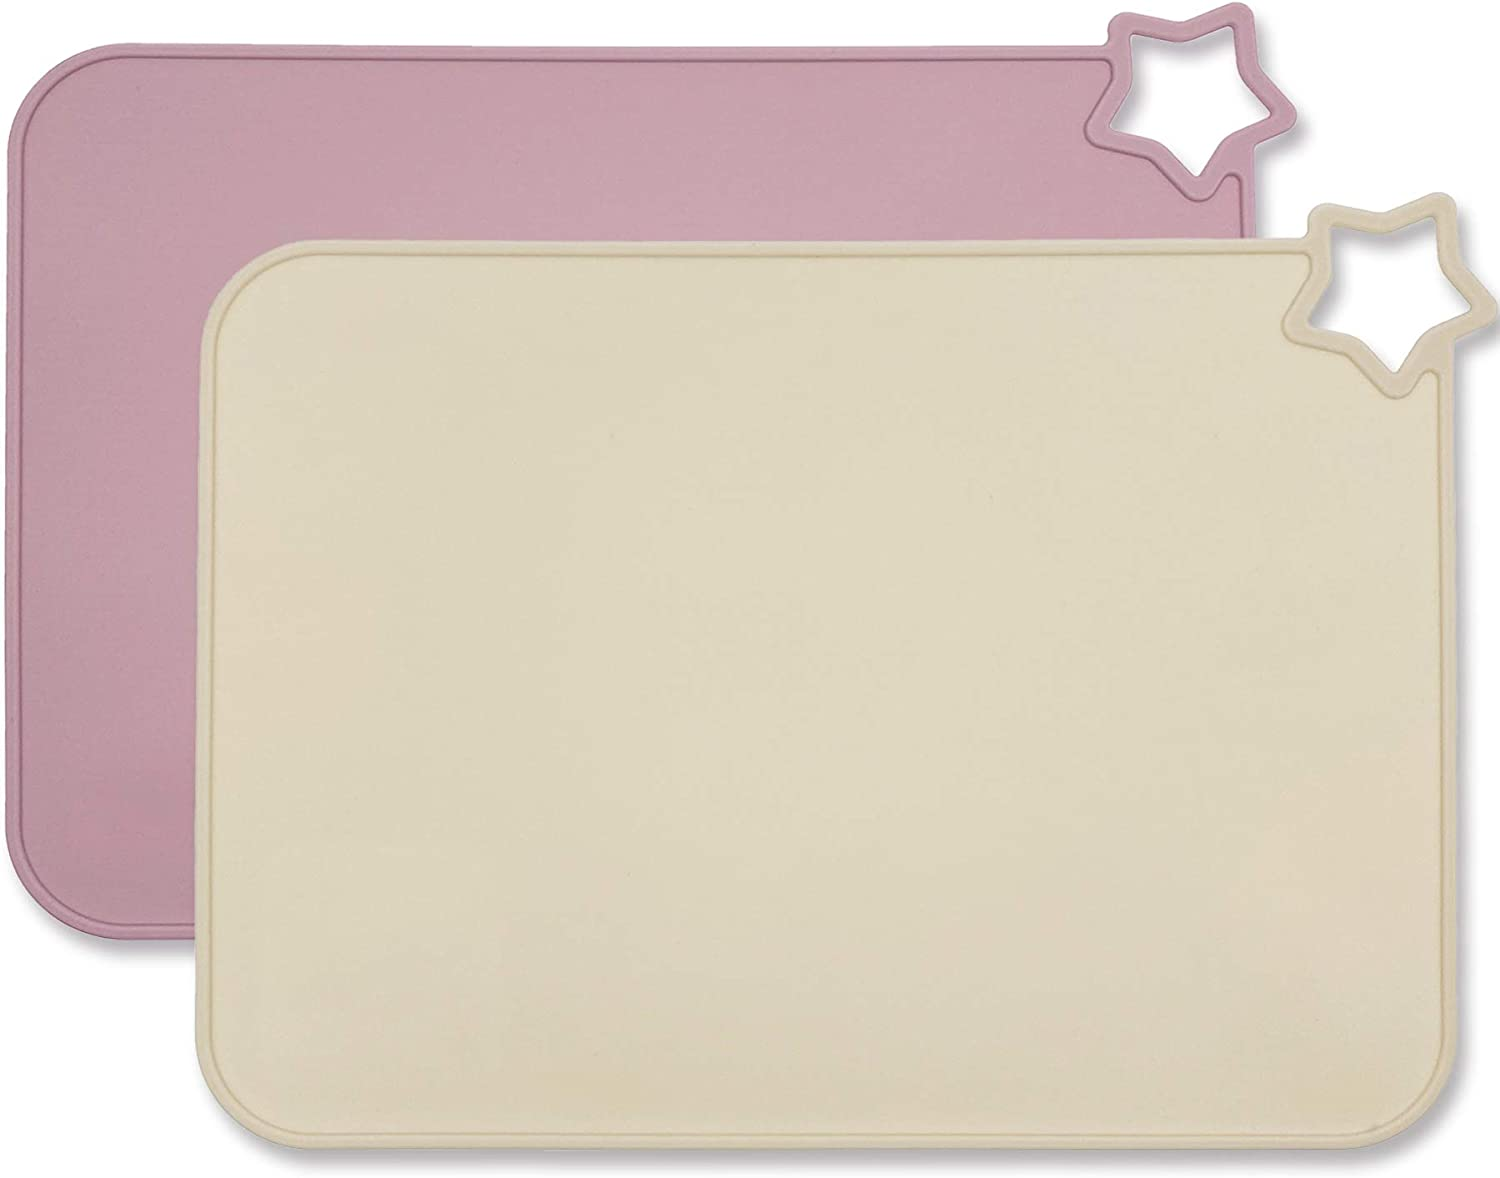 Moonkie Silicone Placemats for Baby & Kid, Stain Resistant Non-Slip Toddler Food Mats Eating Table Mat with 2 Packs (Pale Mauve/Shifting Sand)